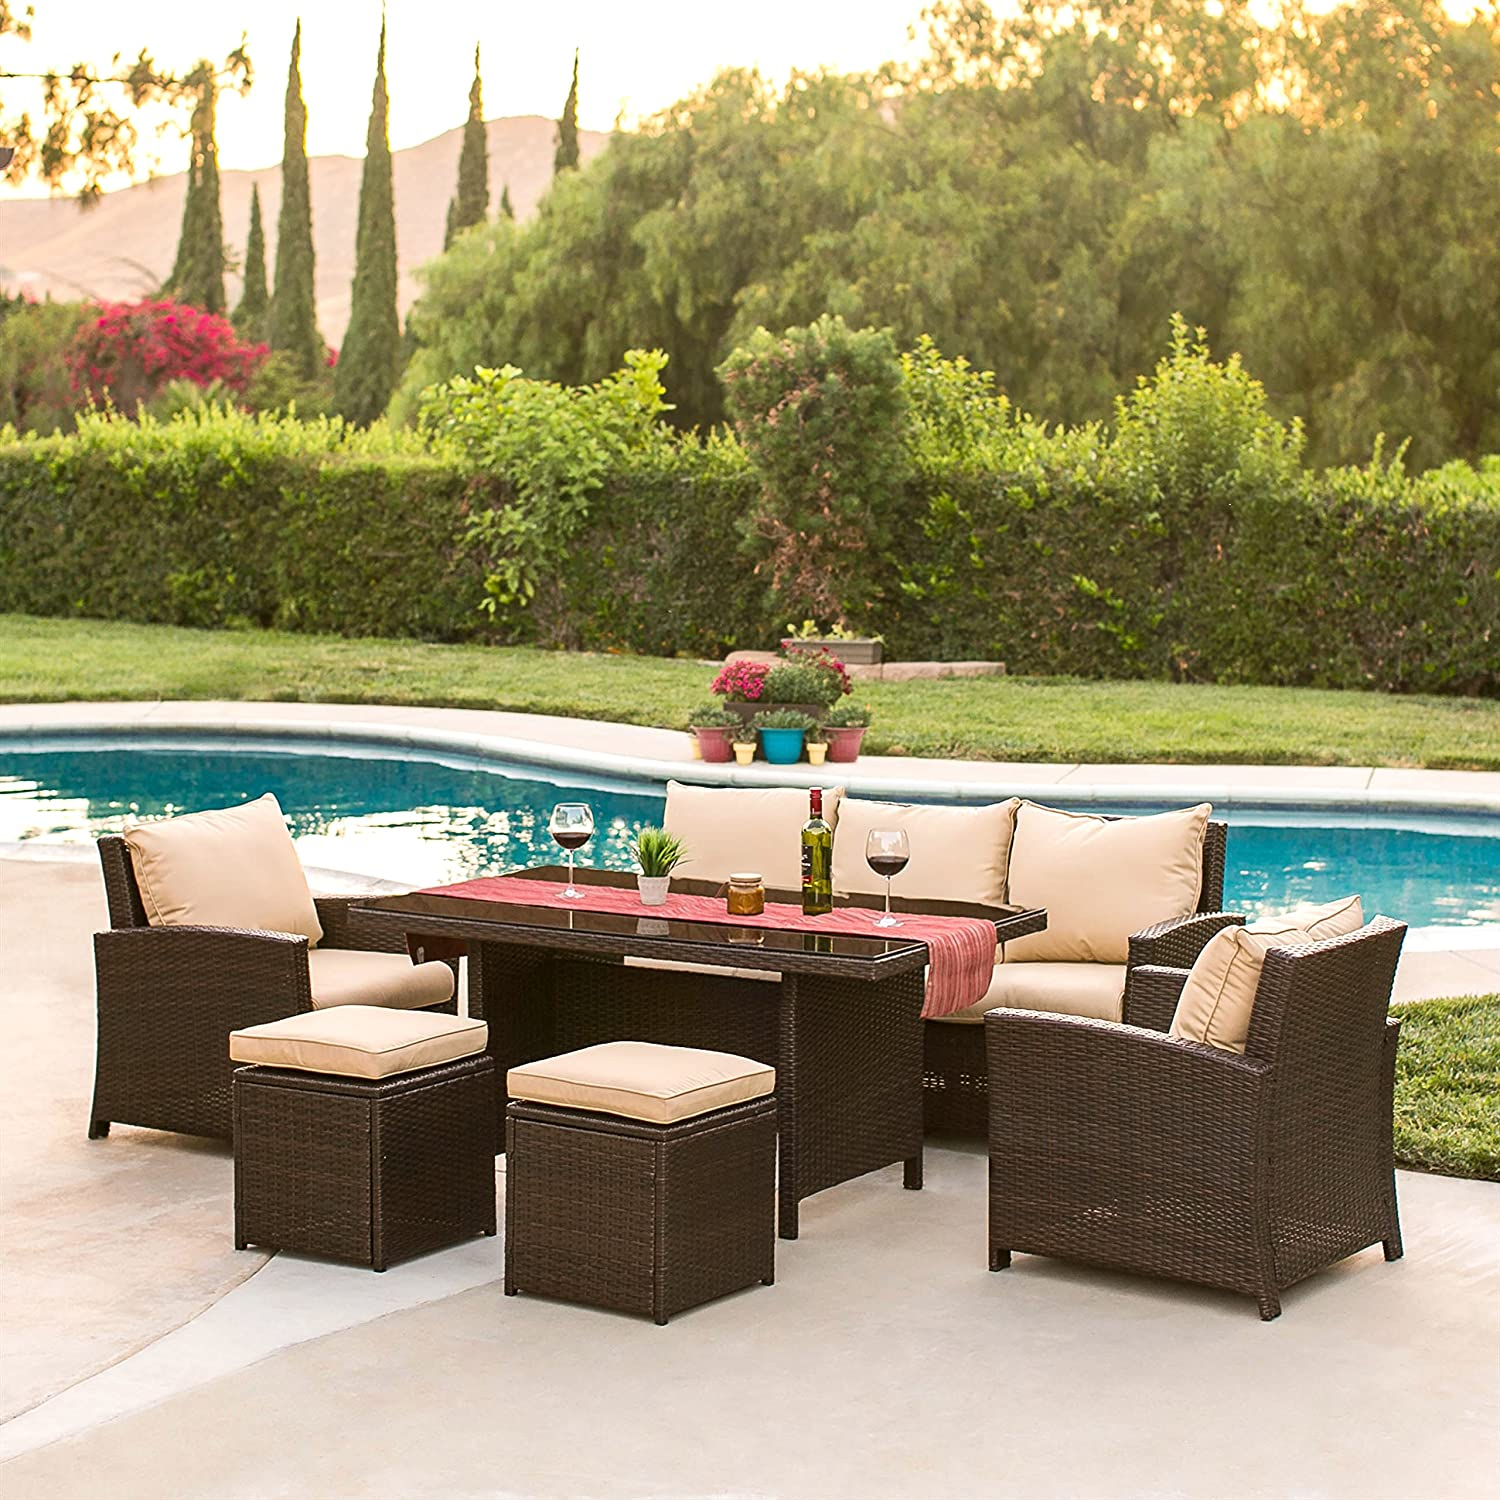 Amazon Best Choice Products plete Outdoor Living Patio